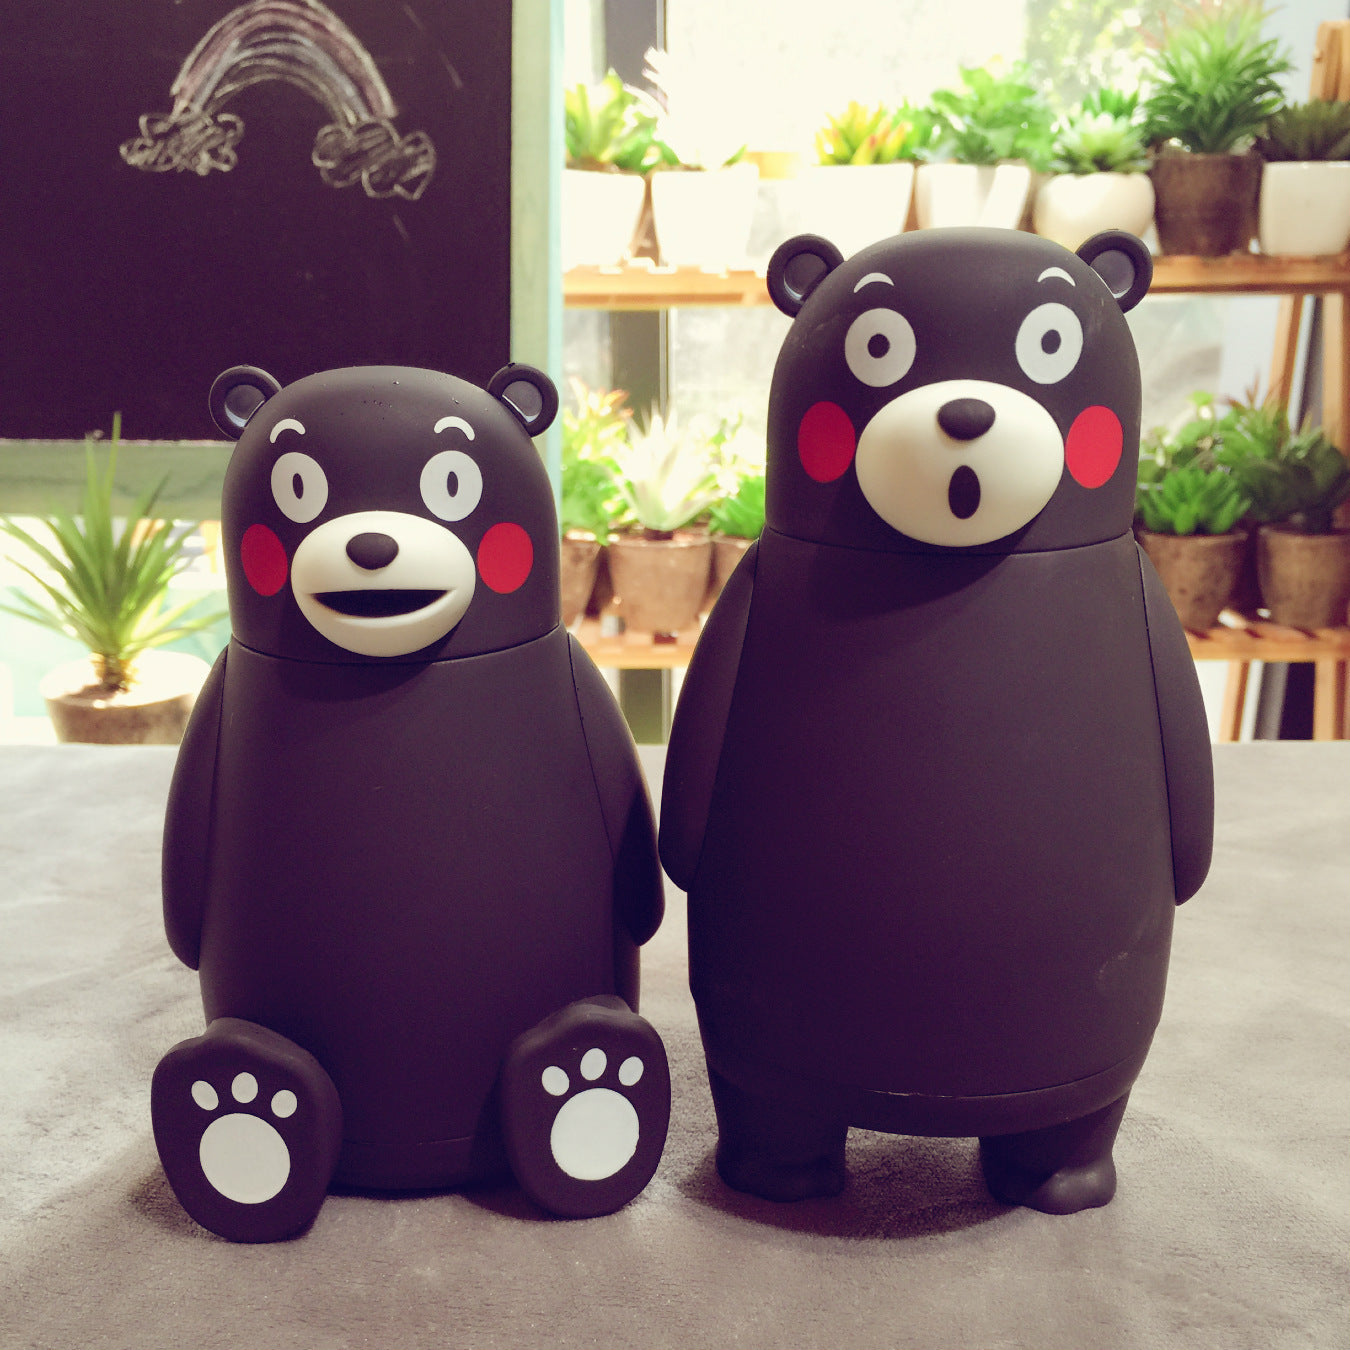 Cute Kumamon Japan Mascot Termos Flasks